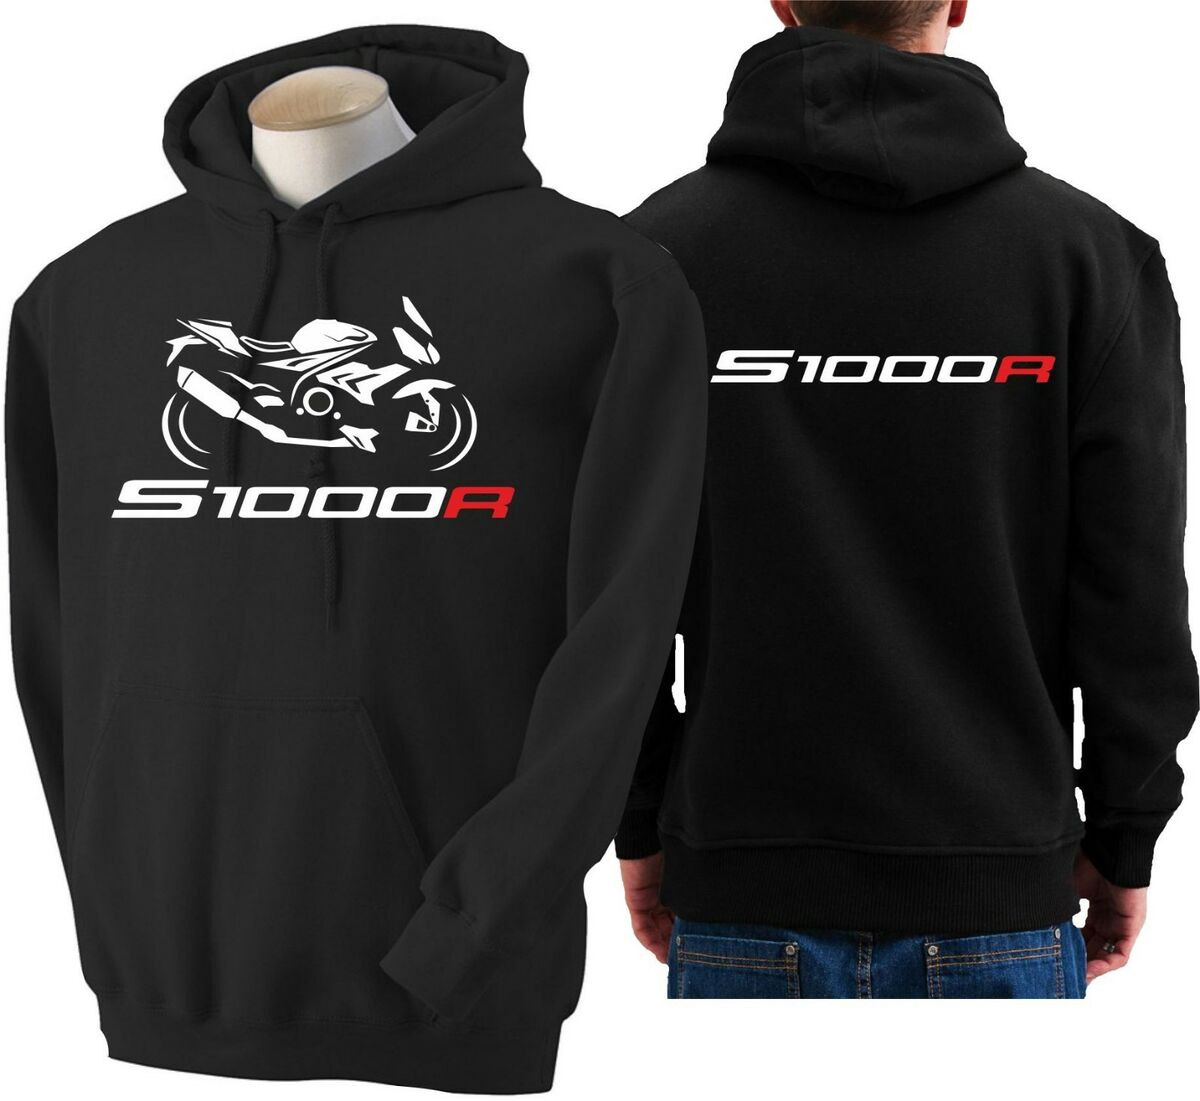 Felpa per moto bmw s1000r hoodie sweatshirt bike s 1000 r hoody hooded sweater 